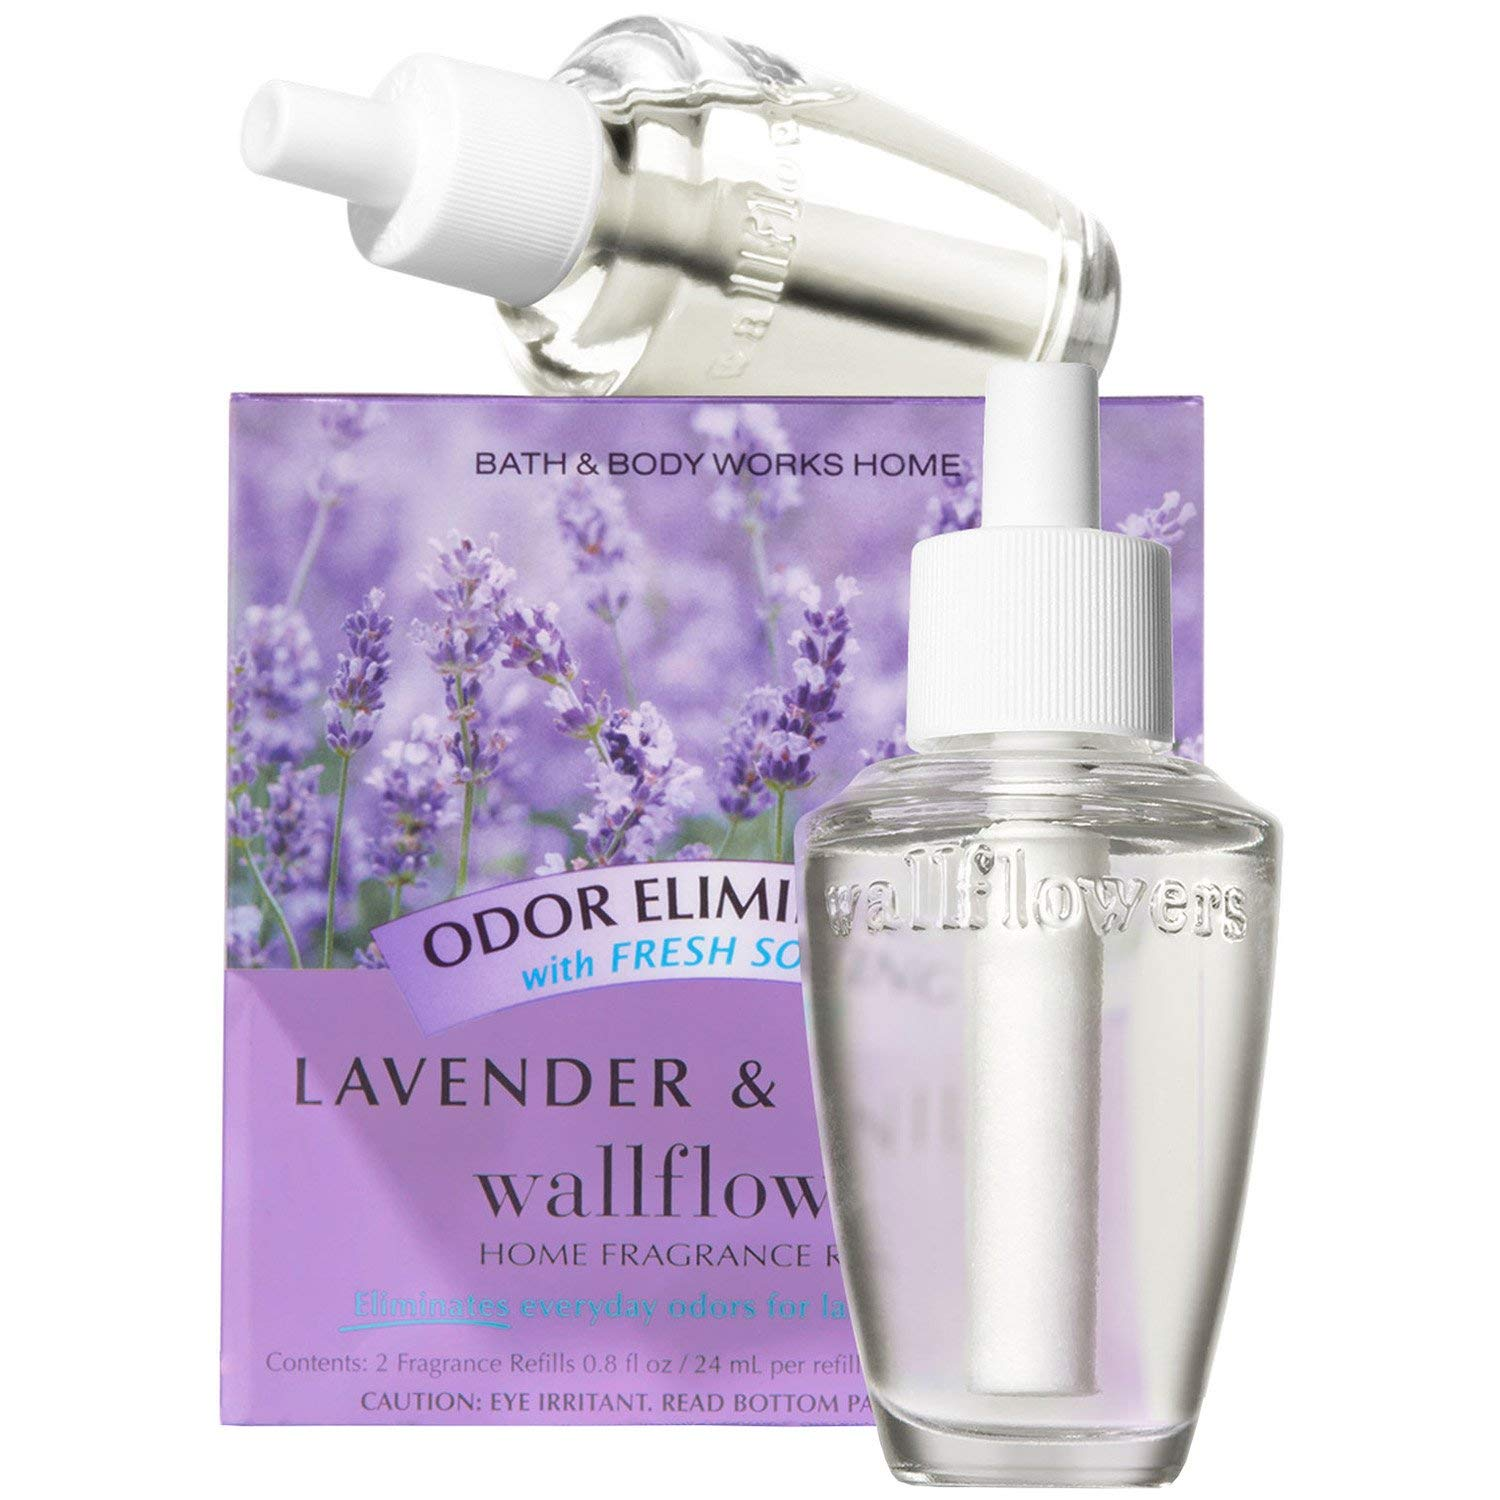 Bath & Body Works Wallflowers Home Fragrance Refill Bulbs Lavender & Vanilla 2 Pack B00HIE4SRW